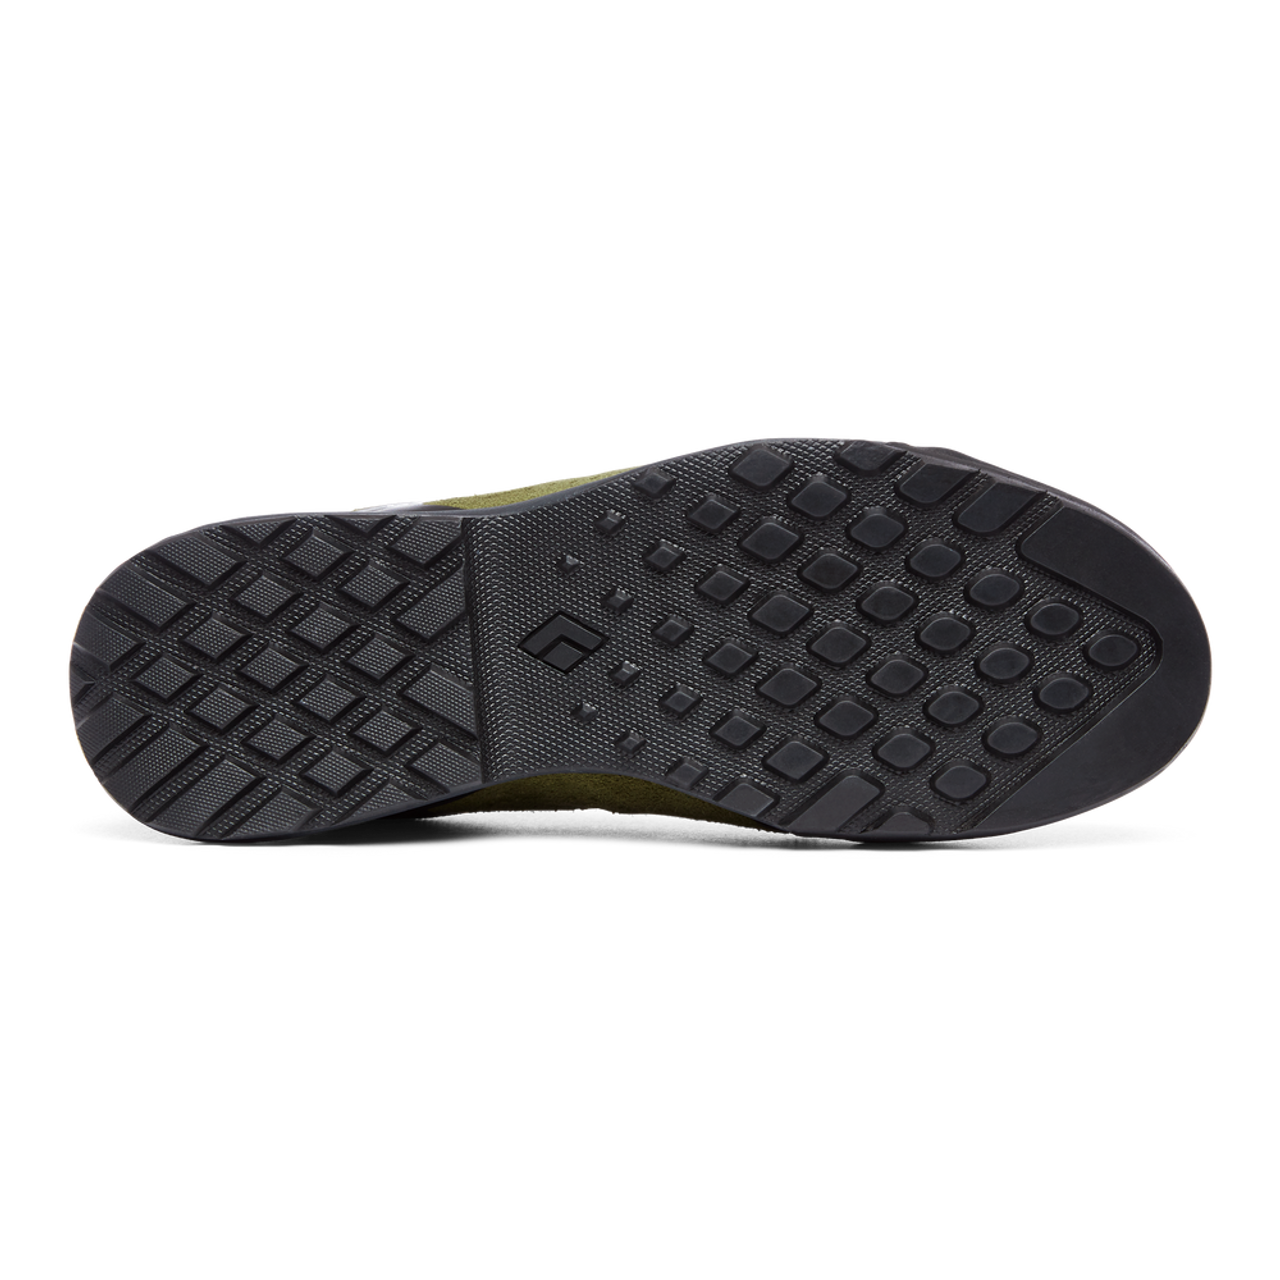 Black Diamond Mission XP Leather Low - Men's Approach Shoe - Bottom - Online at Mountain Mail Order South Africa